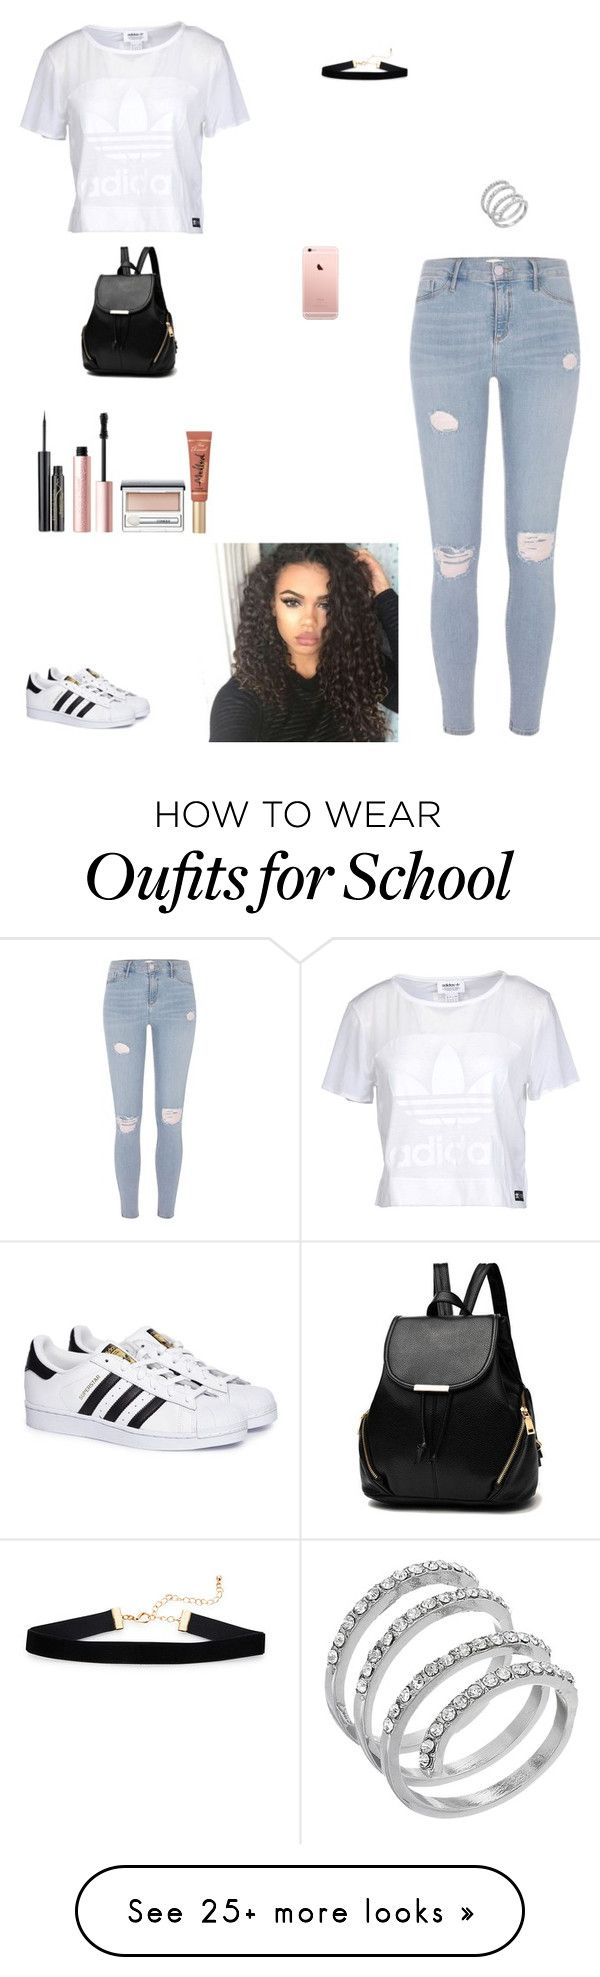 """tomorrow at school"" by kittykat125 on Polyvore featuring adidas Originals, River Island, adidas, GUESS, Elizabeth Arden, Too Faced Cosmetics and Clinique"